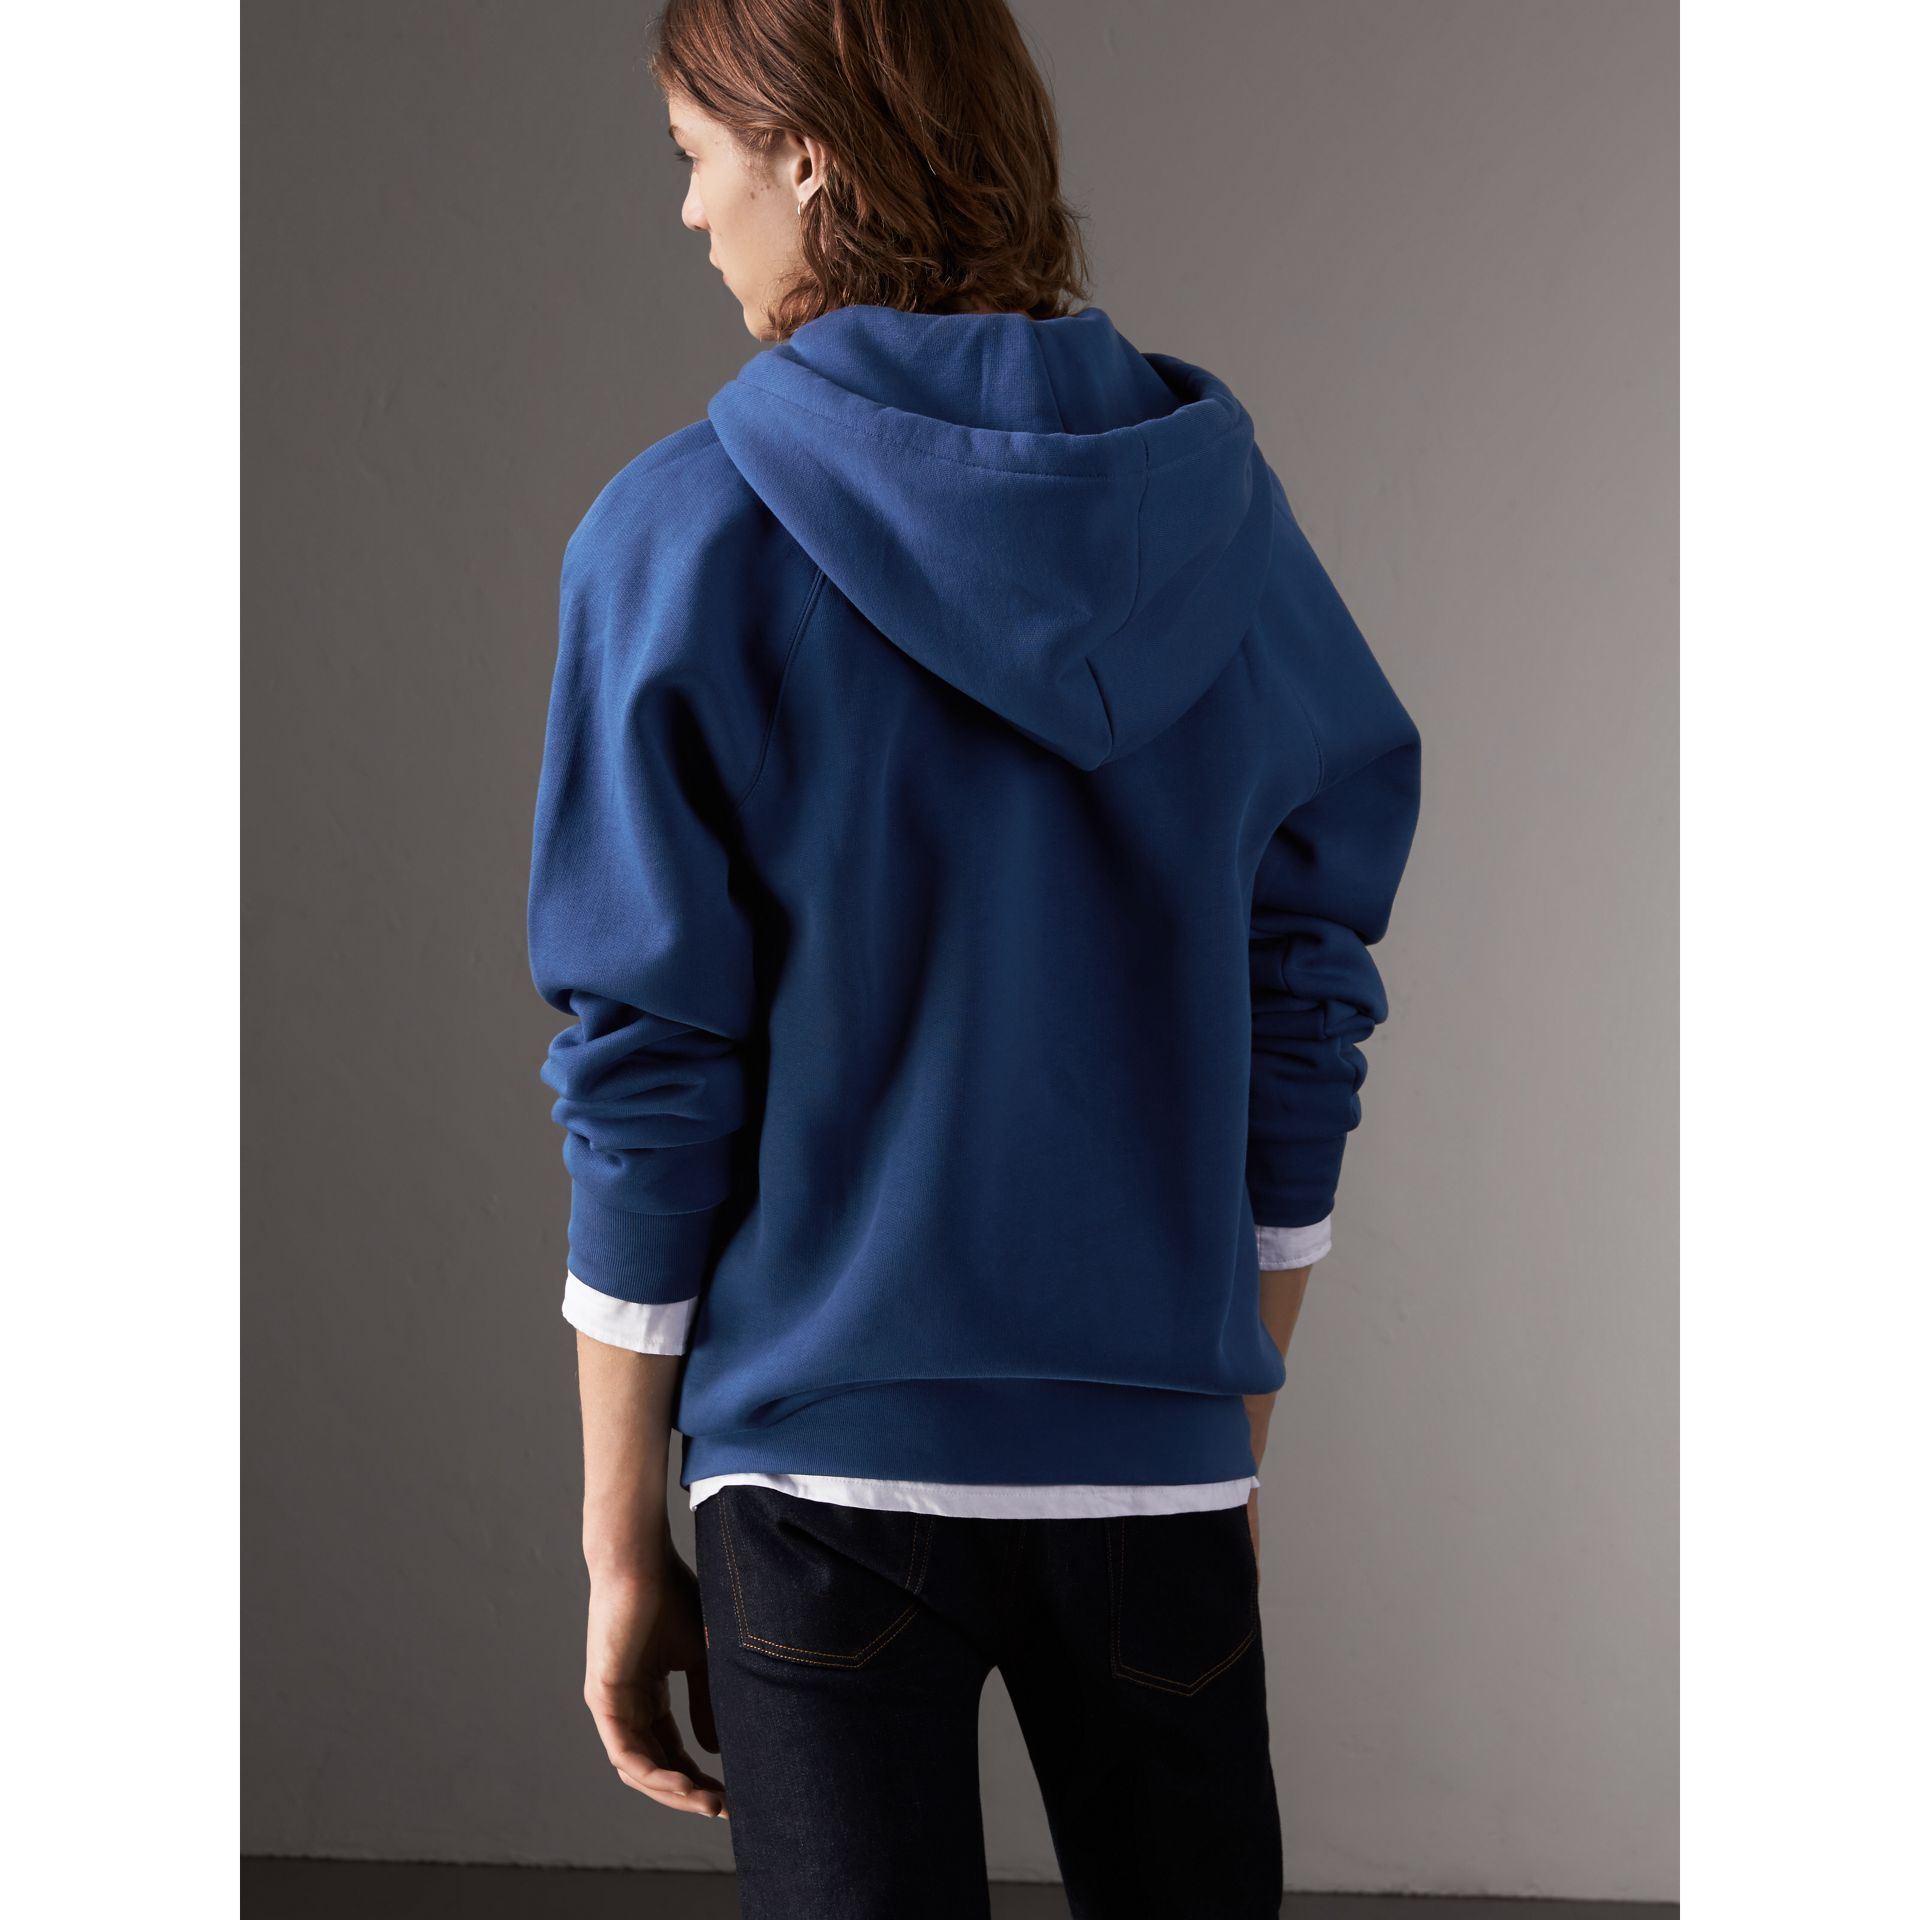 Embroidered Hooded Sweatshirt in Bright Blue - Men | Burberry Canada - gallery image 2